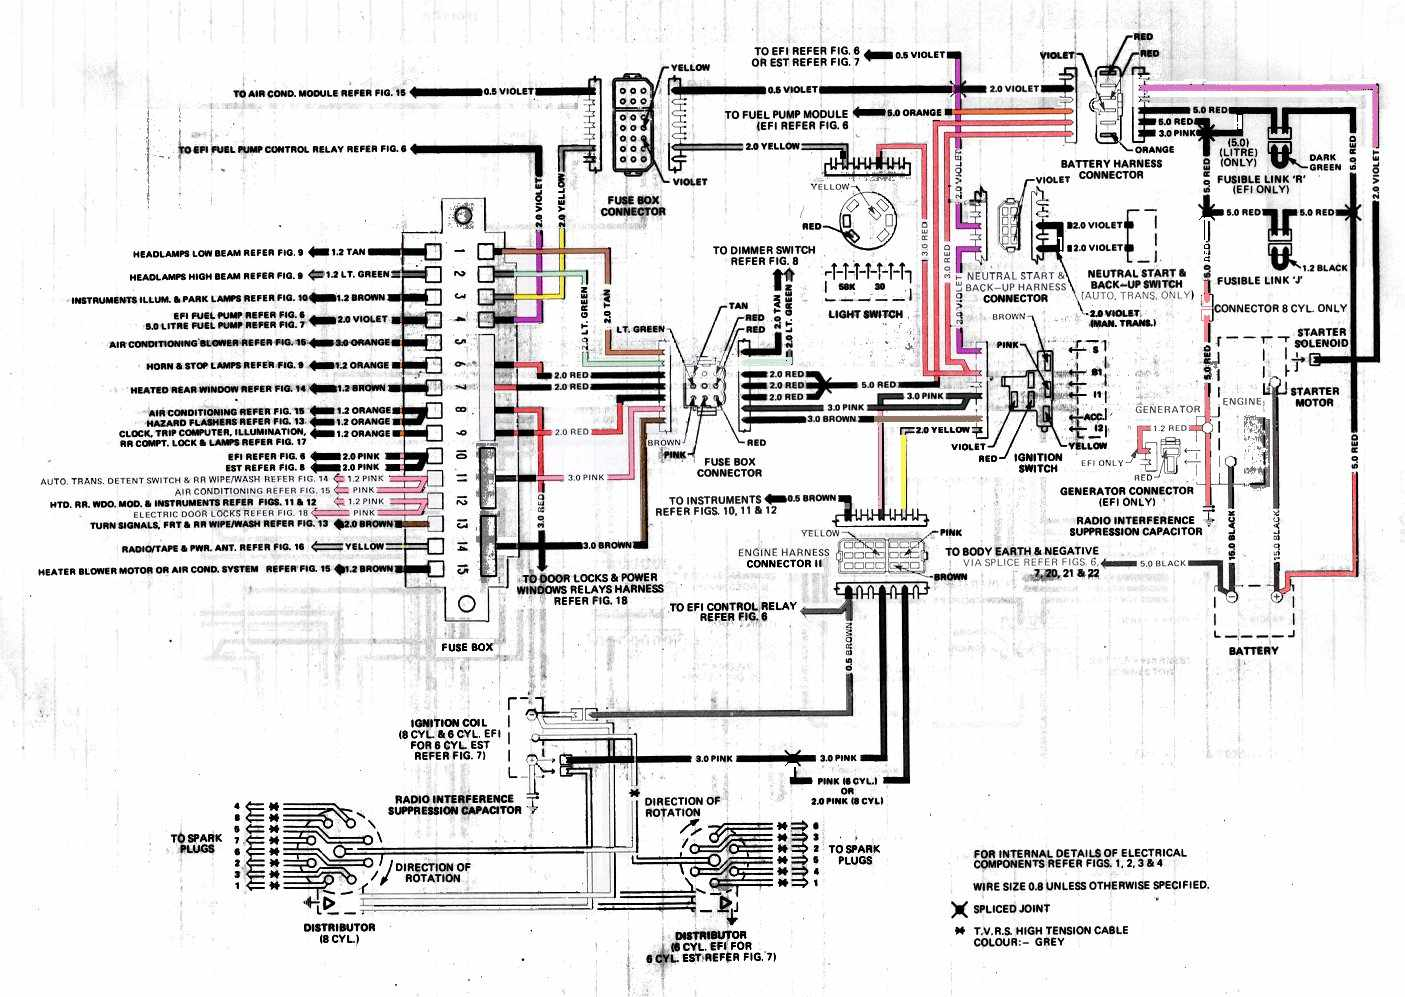 Vt Commodore Wiring Diagram | Wiring Liry on stereo cable, stereo wiring kit, auto stereo harness, stereo wiring adapter, seat belt harness,